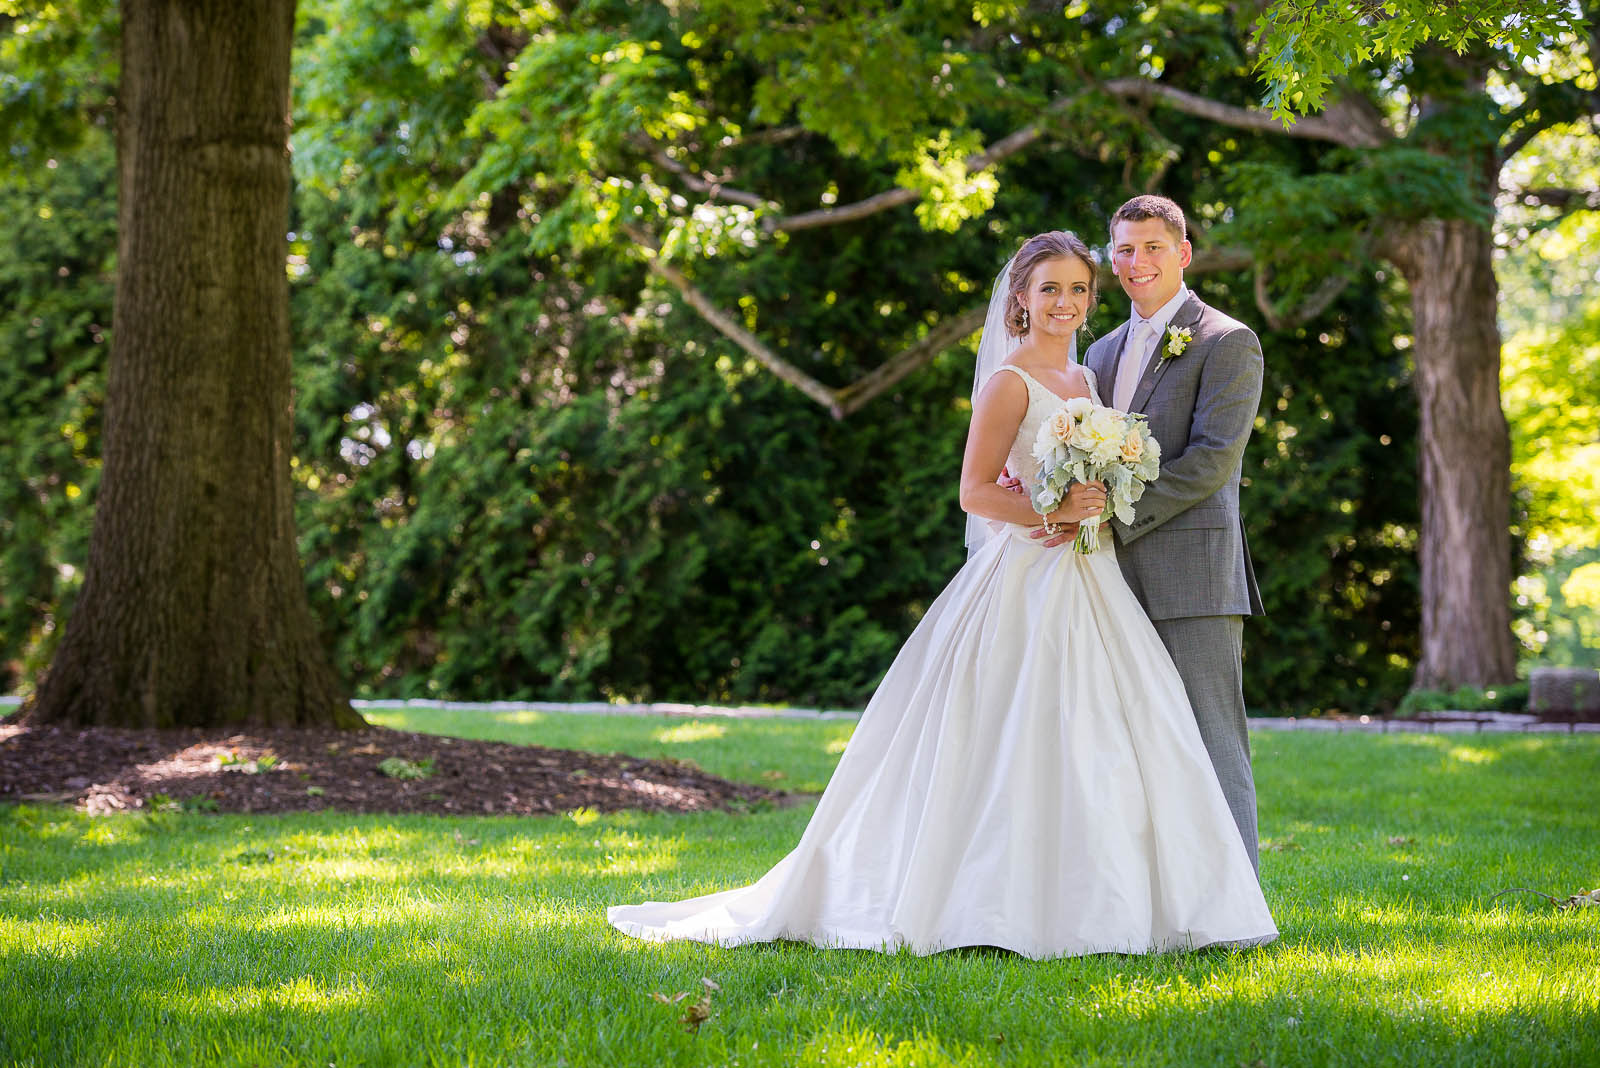 eric_and_christy_photographers_blog_wedding_madalyntyler-47